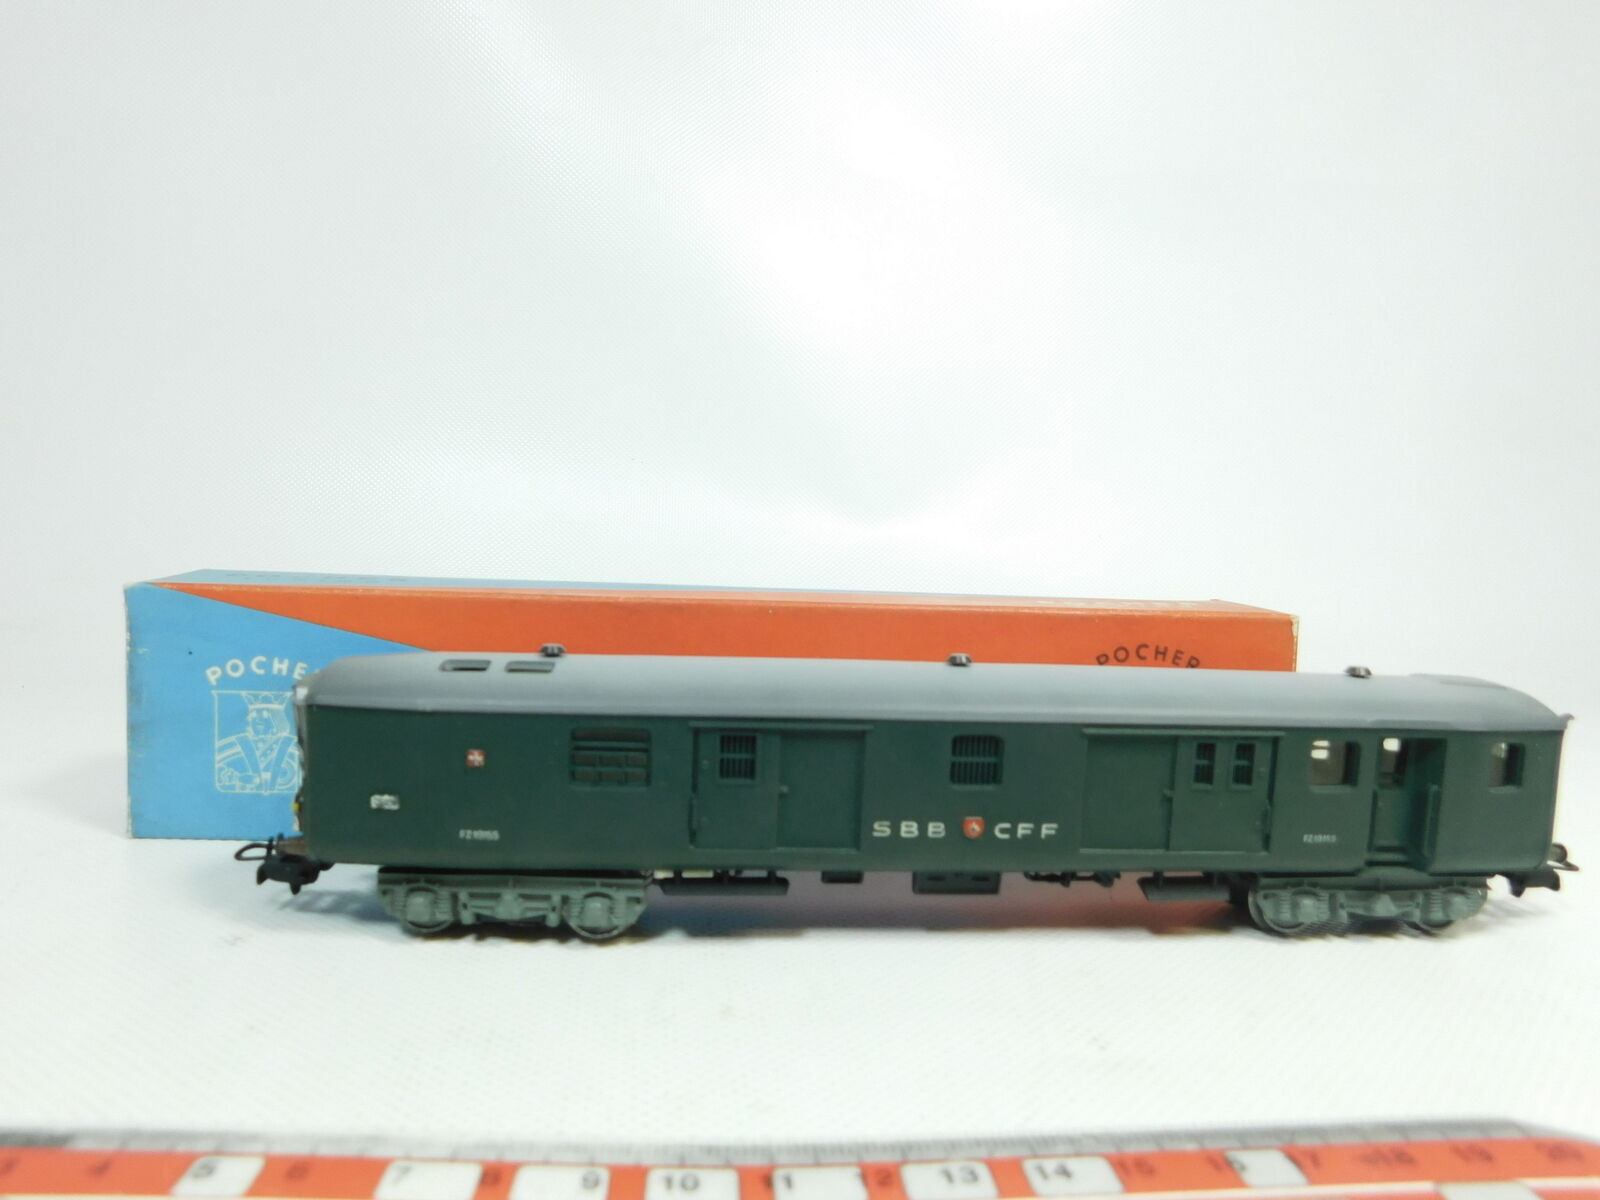 Bj155-0,5 Pocher H0 AC Mail Wagon FZ 19155 SBB CFF with Tail Light OVP   212 3